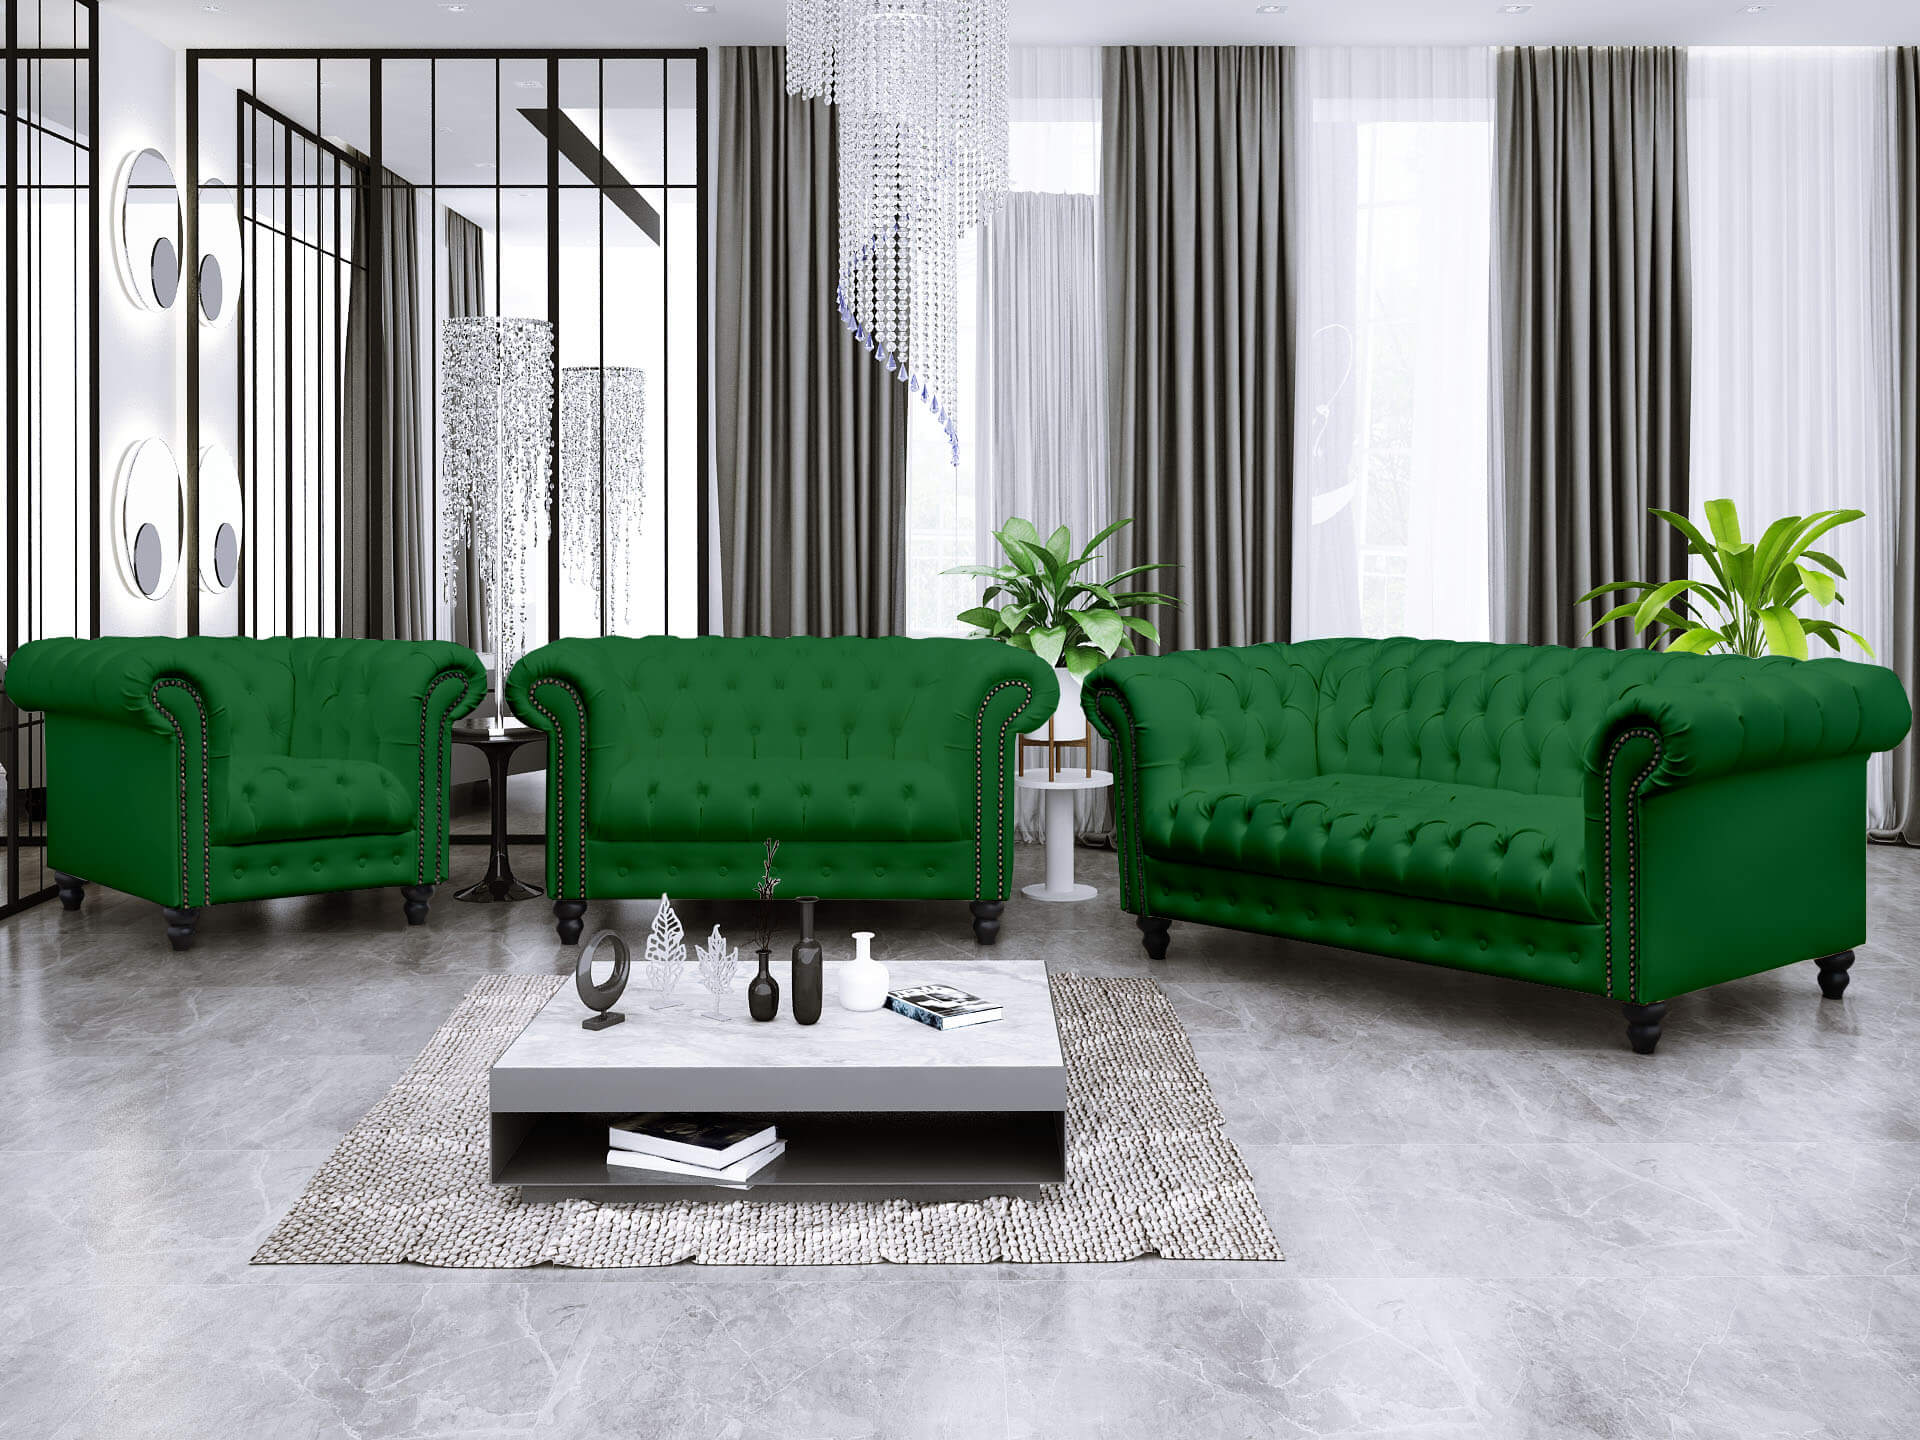 https://www.excluzive.se/wp-content/uploads/2020/10/Chesterfield-Classic-Soffgrupp-Gron.jpg